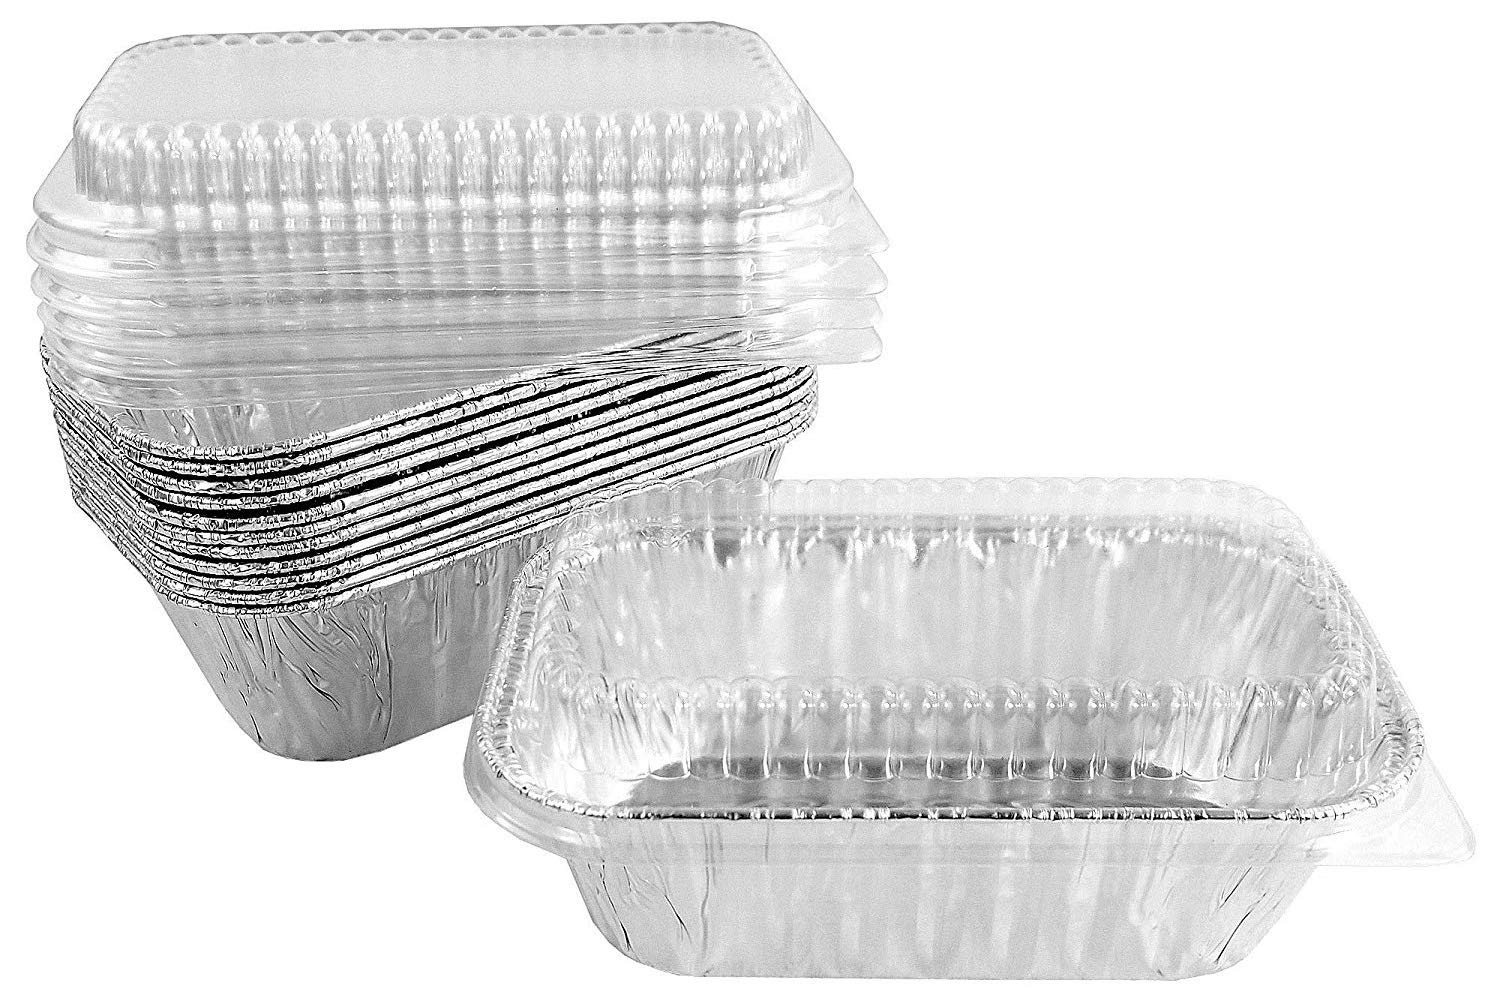 Pactogo Disposable 1 lb. Aluminum Foil Mini Loaf Pans with Clear Low Dome Lids (Pack of 400 Sets) by PACTOGO (Image #1)